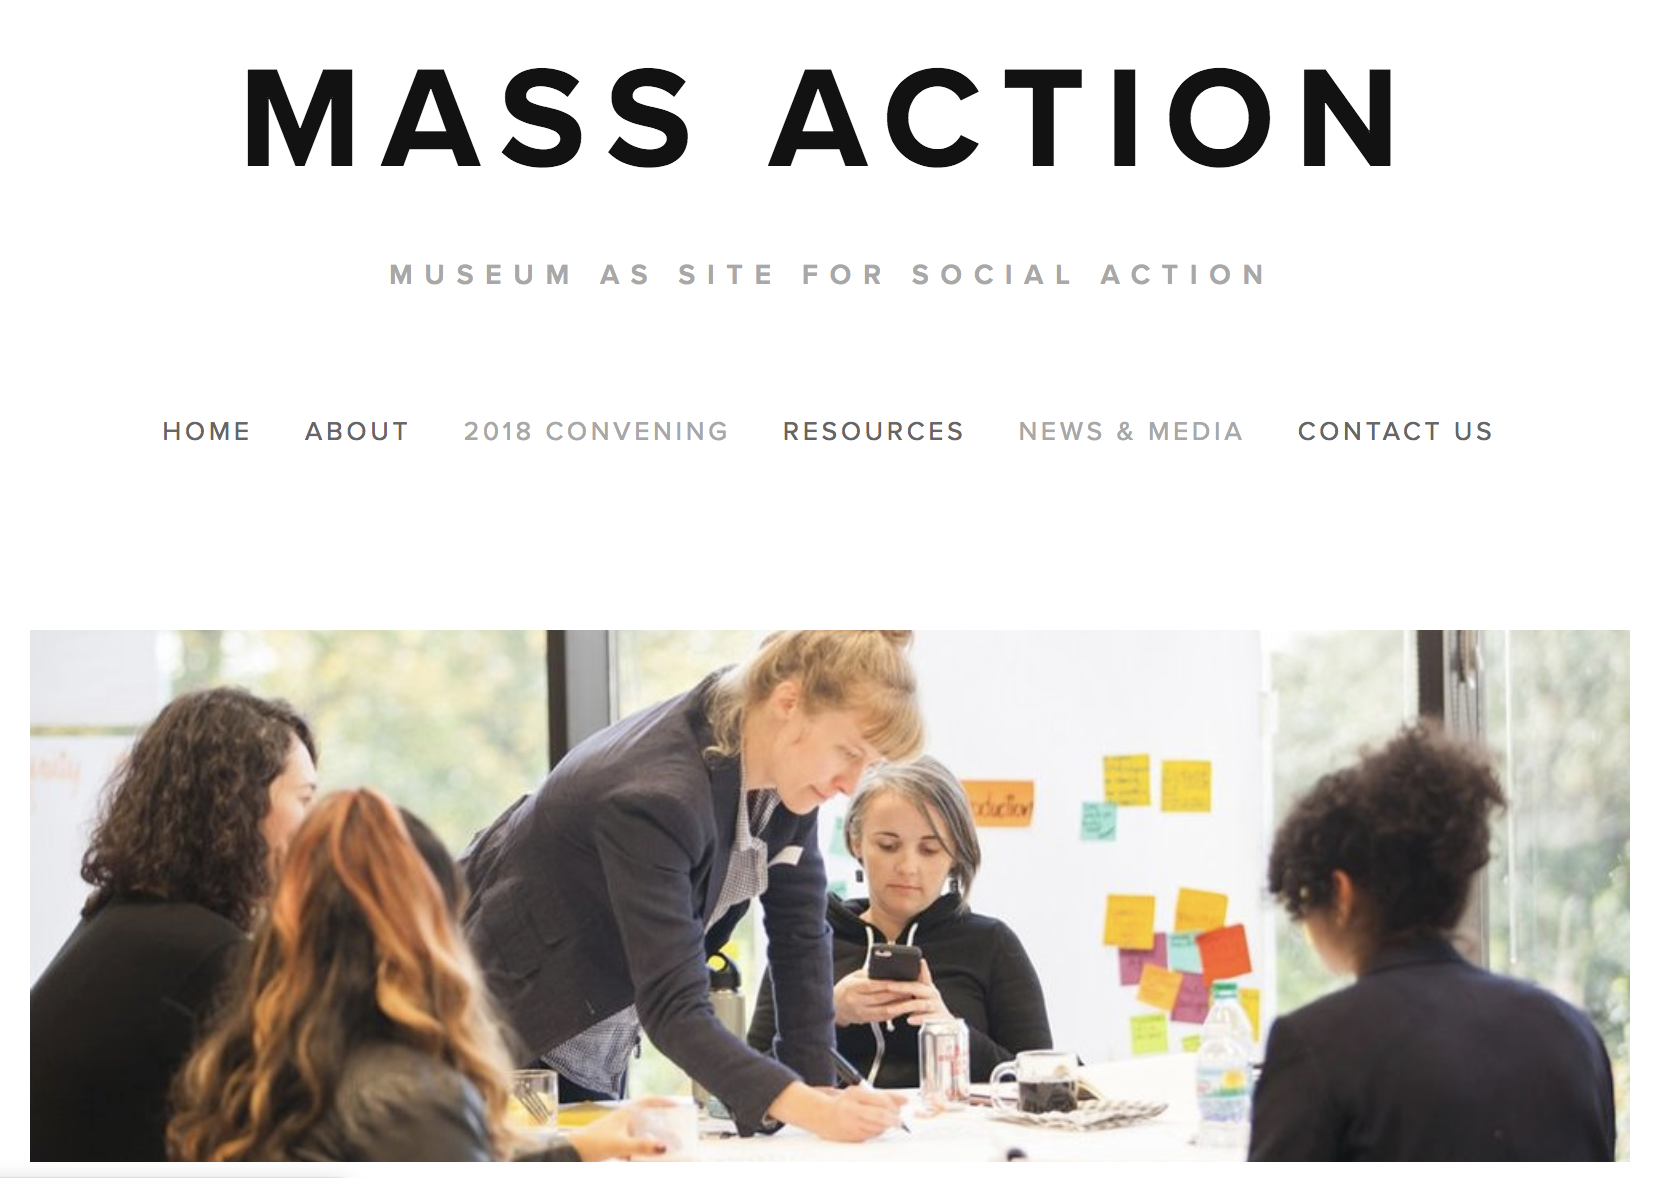 Museum as Site for Social Action Convening, Oct 2018 - This October we attended the MASS Action Convening at the Minneapolis Institute of Art with 60+ museums seeking to align with more equitable and inclusive practices.